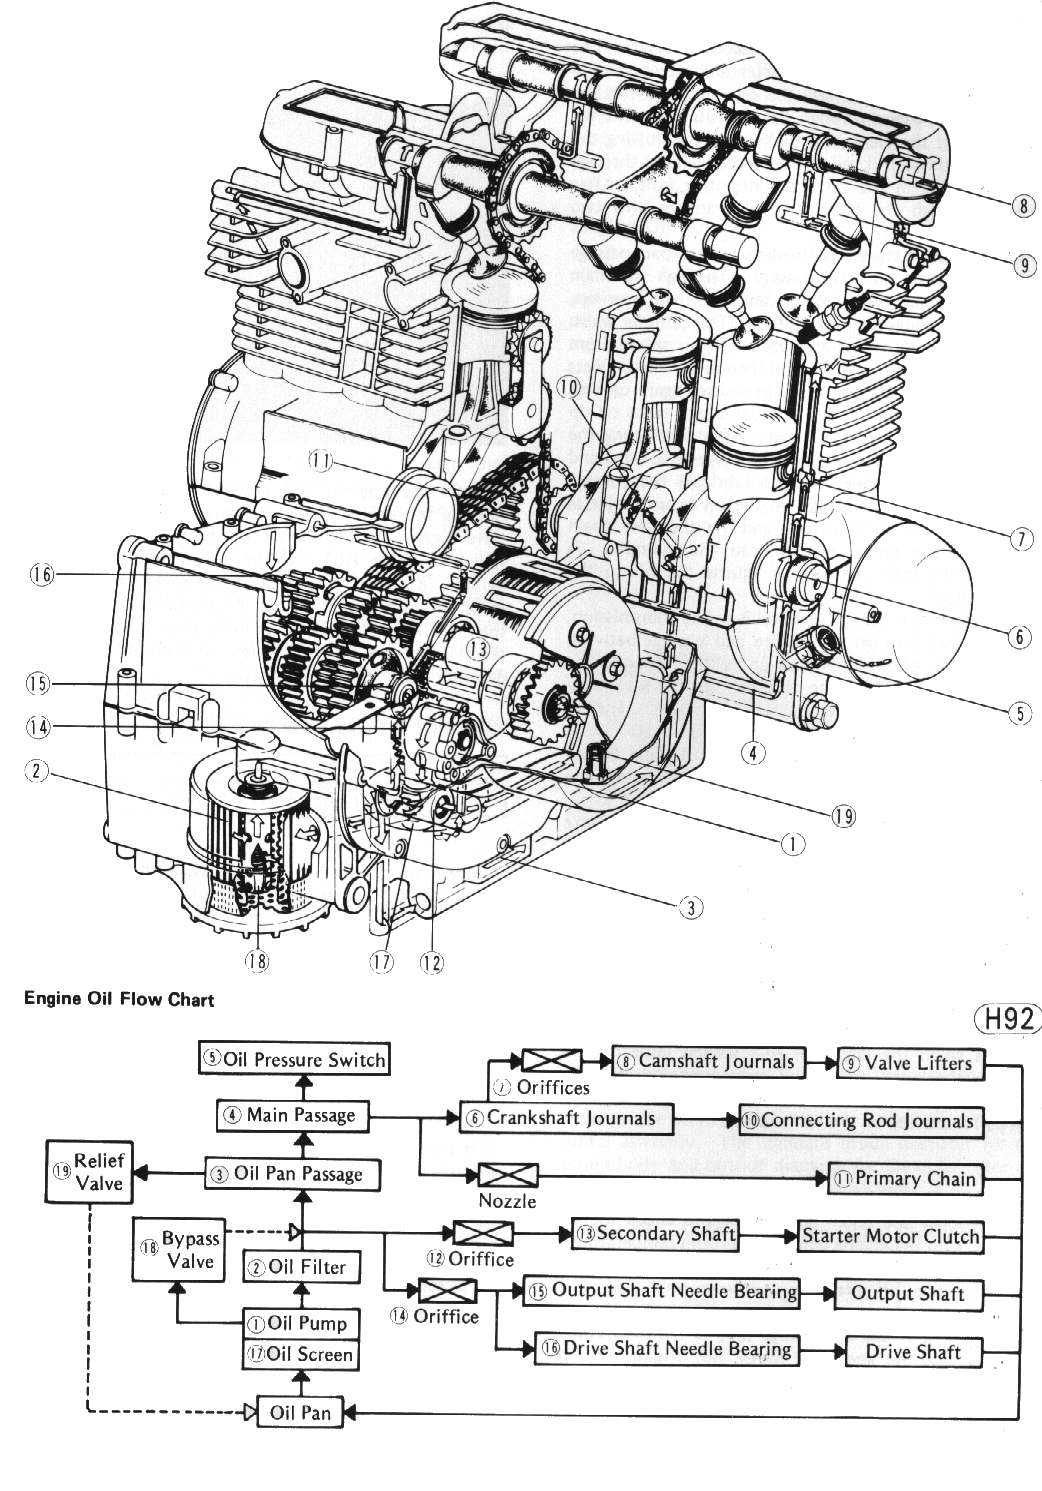 automotive wiring manual formerly official auto wiring guide containing guaranteed correct circuit diagrams covering all motor cars from 1912 to 1919 inclusive